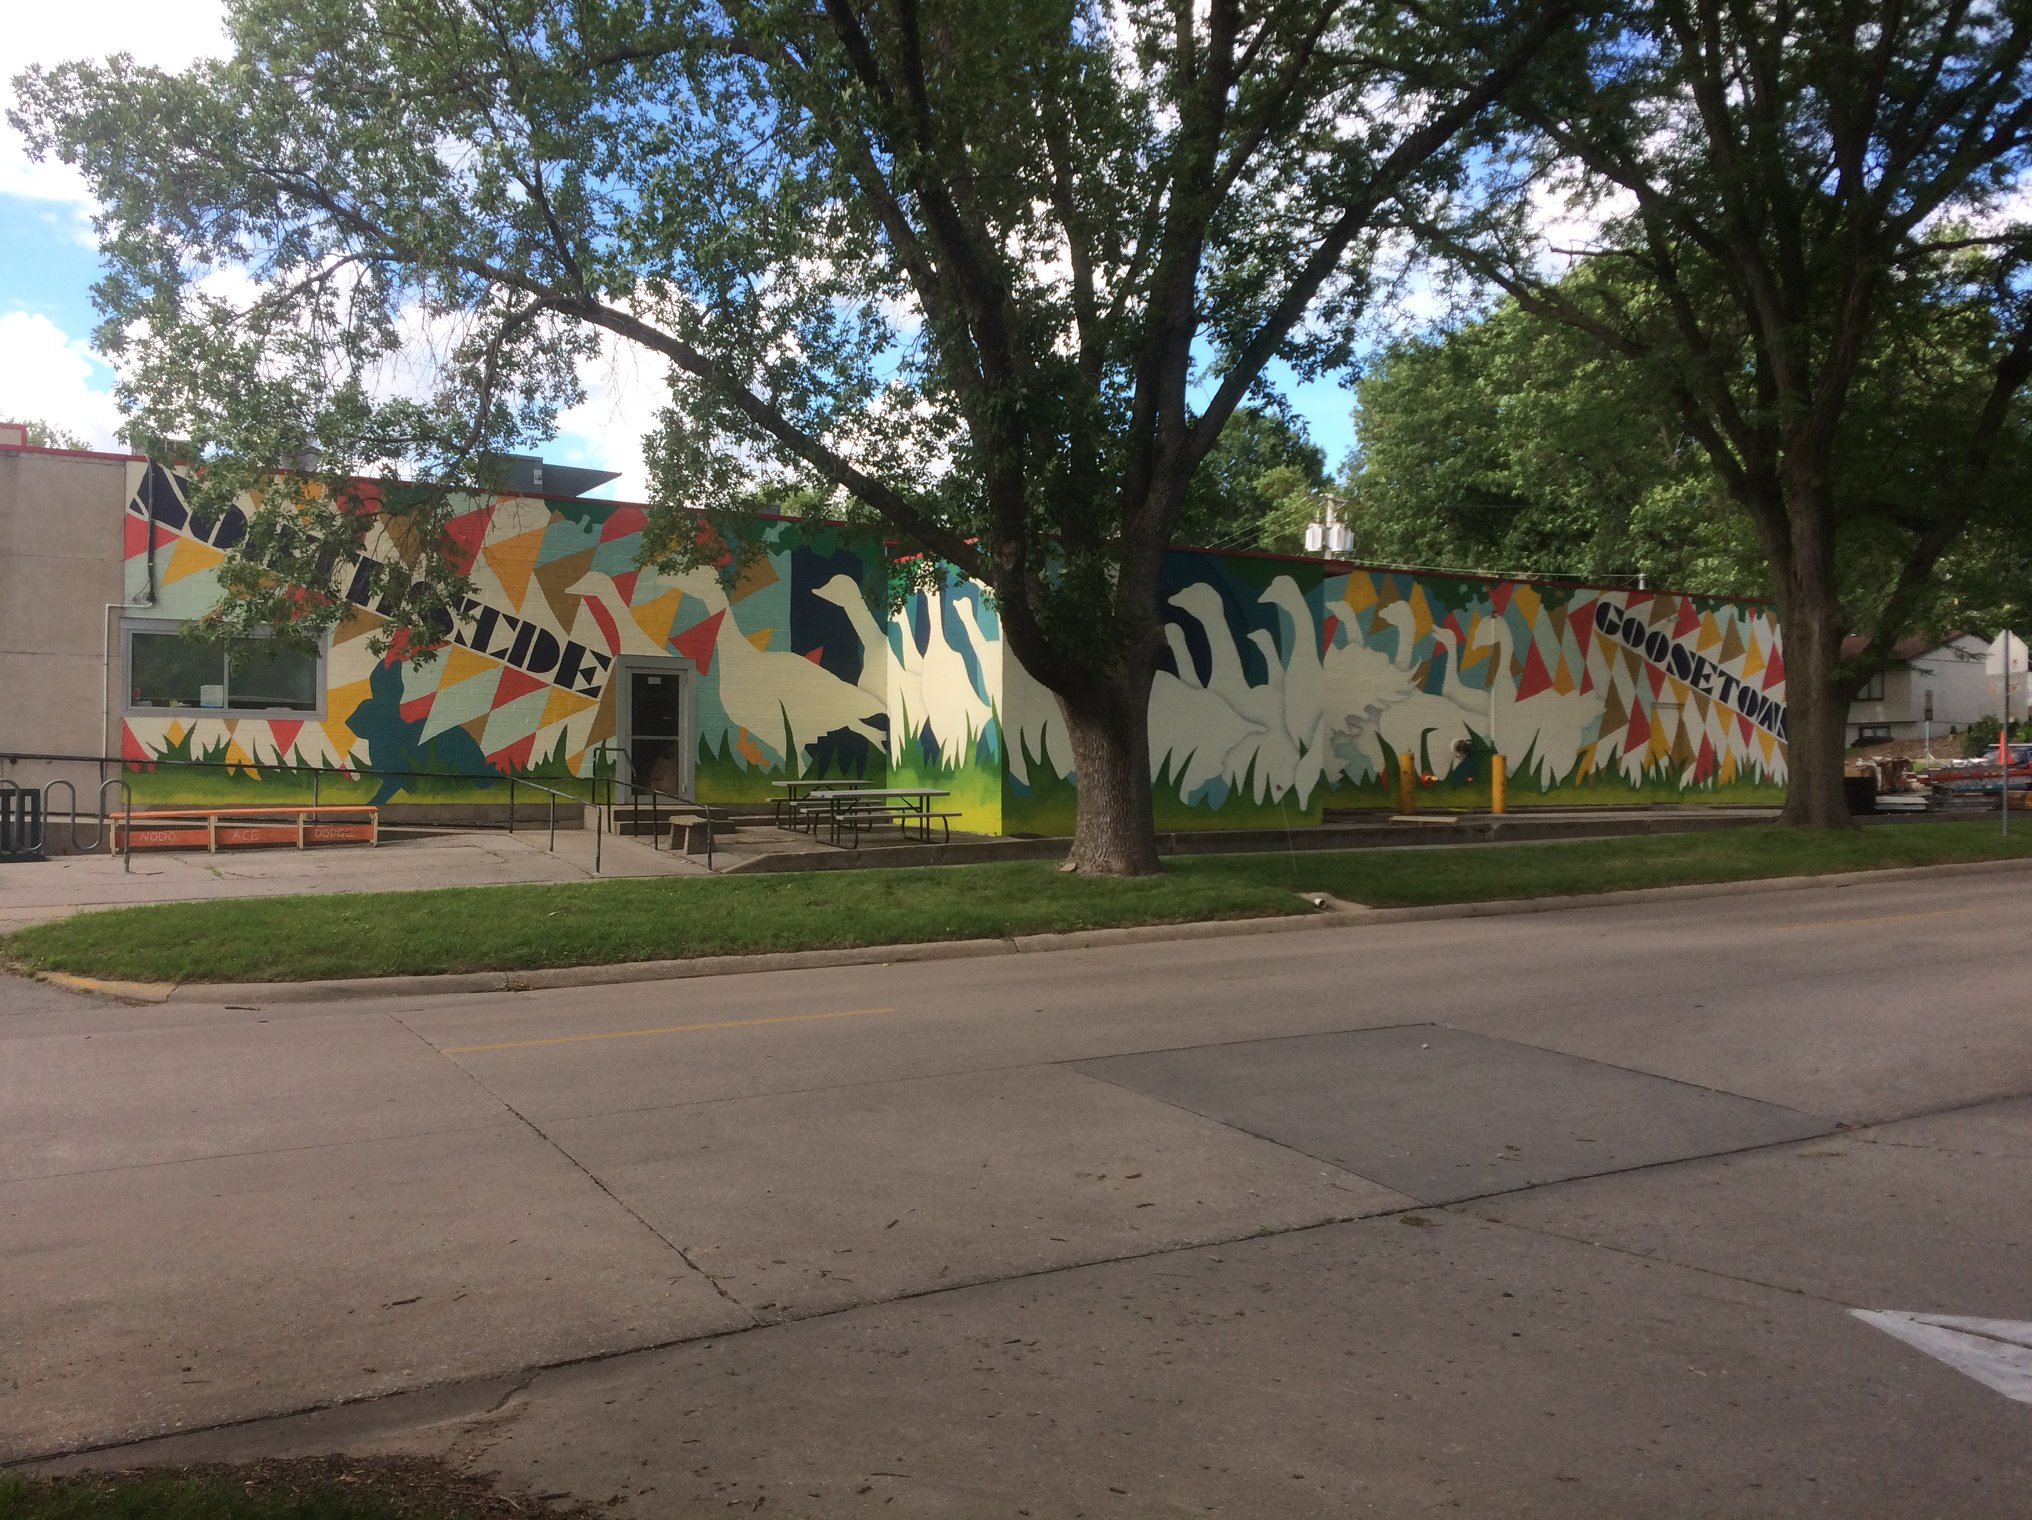 Northside/Goosetown Community Mural, 2018. Painted by 170 neighbors, aged 1 to 86, over the course of a 3 day weekend. The mural celebrates (and renews) the connection between these two historic neighborhoods.